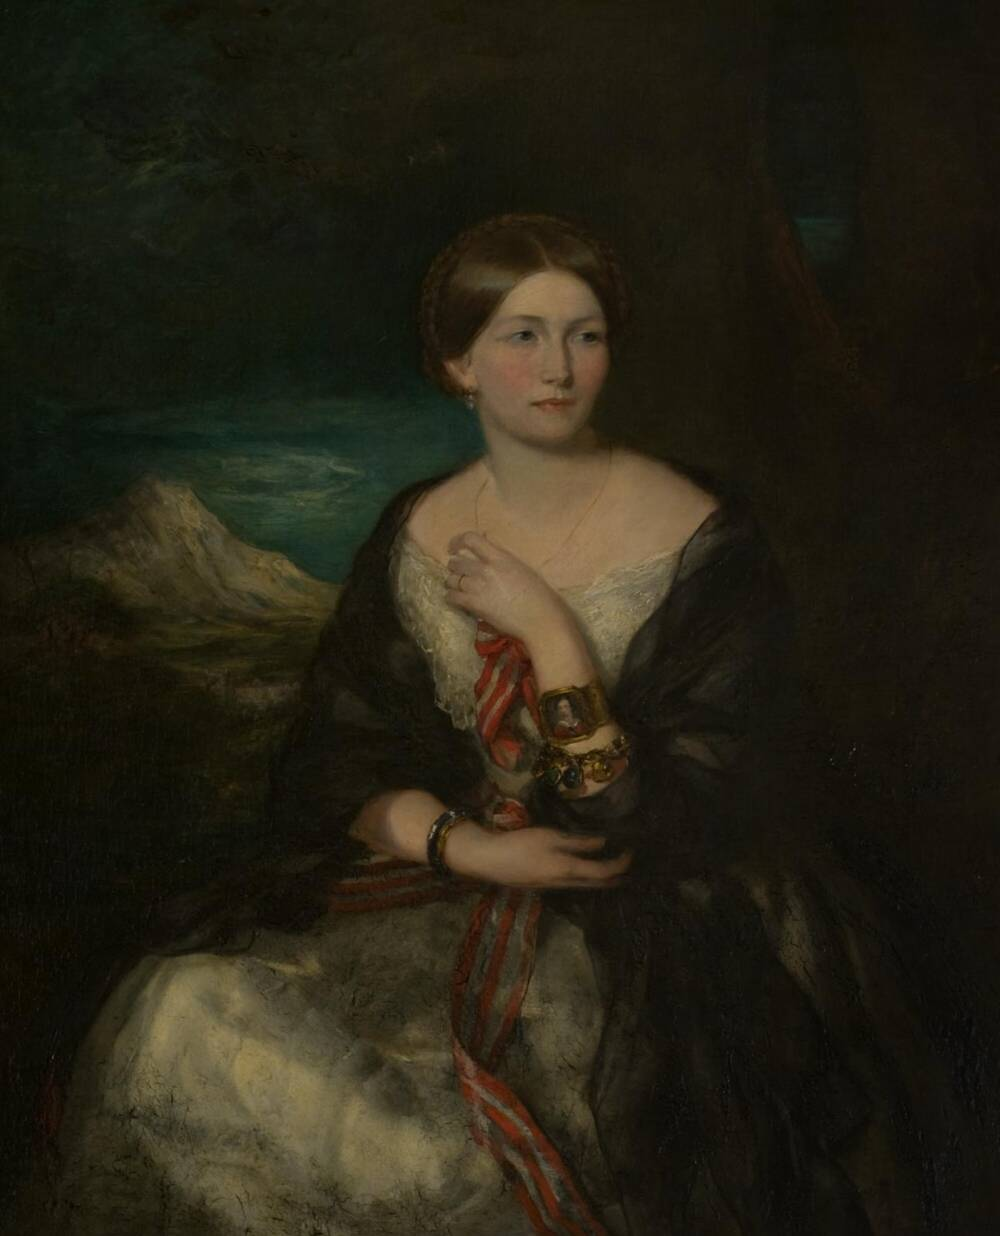 Portrait of a woman wearing a light coloured dress with a dark shawl.